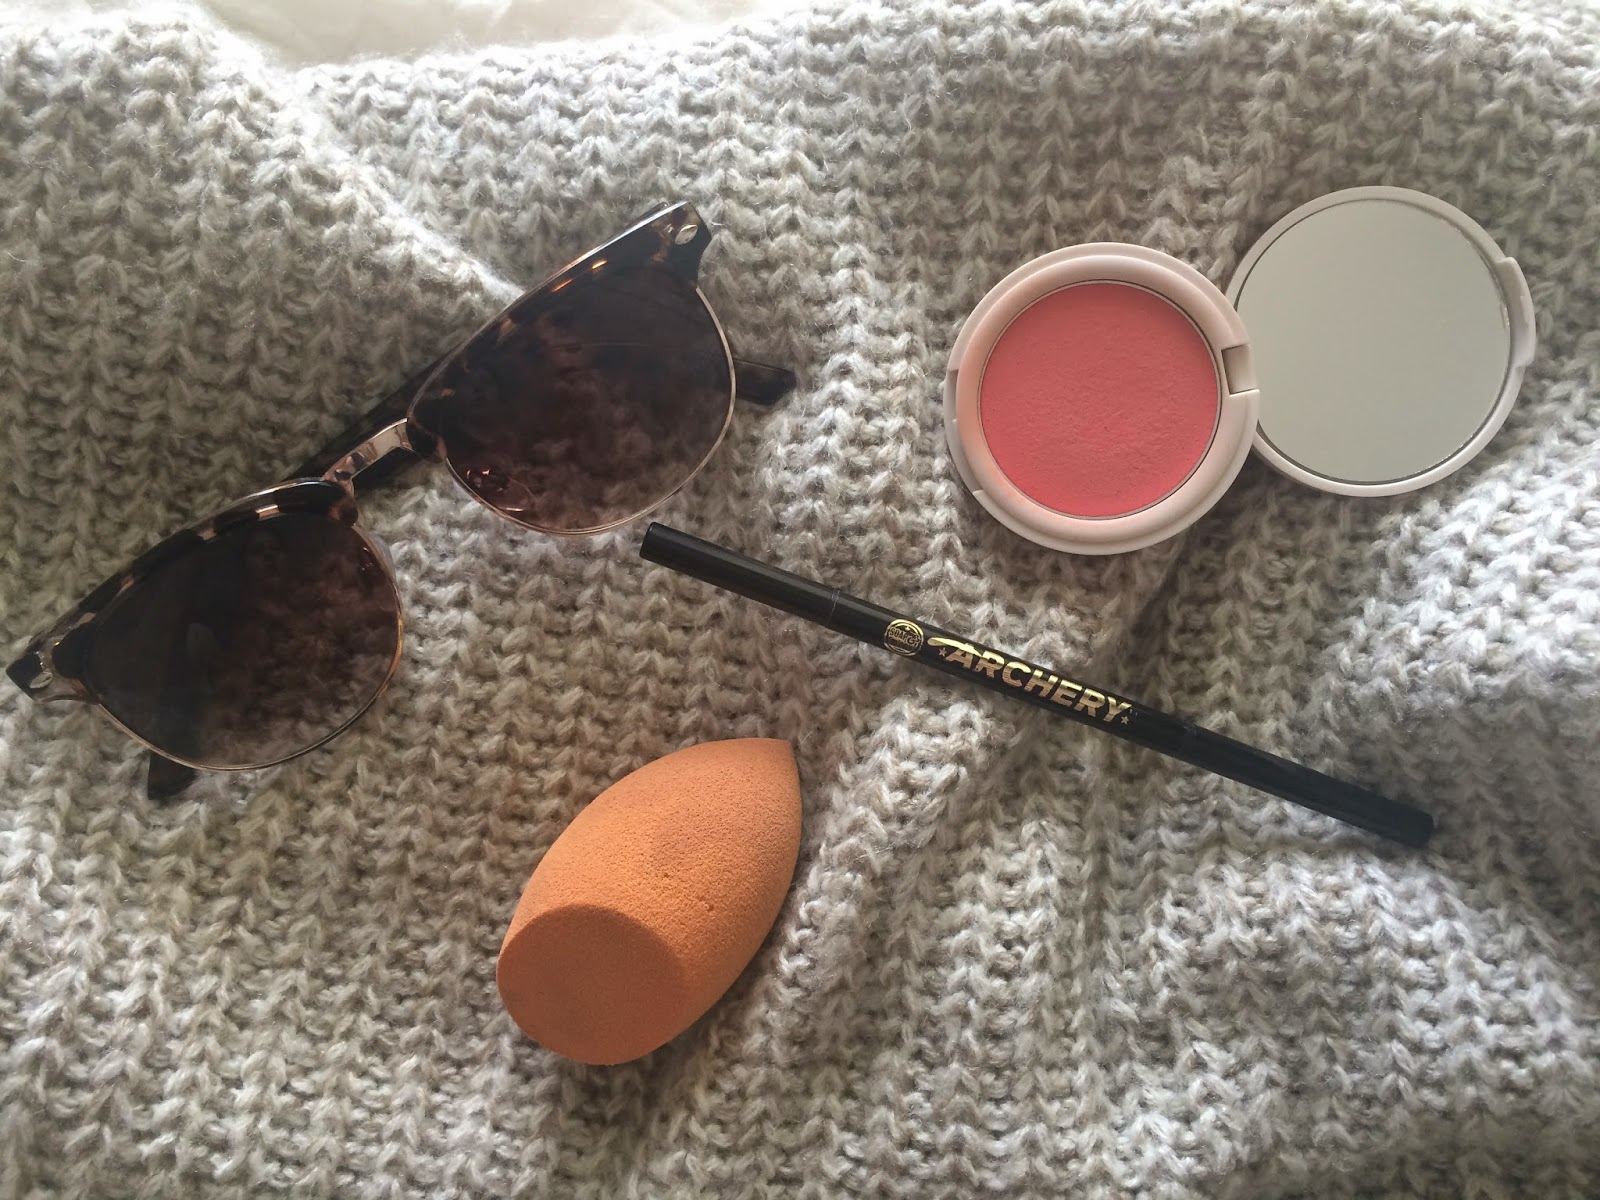 sweet allure april favourites 2015 sunglasses make up beauty blender soap and glory topshop blusher